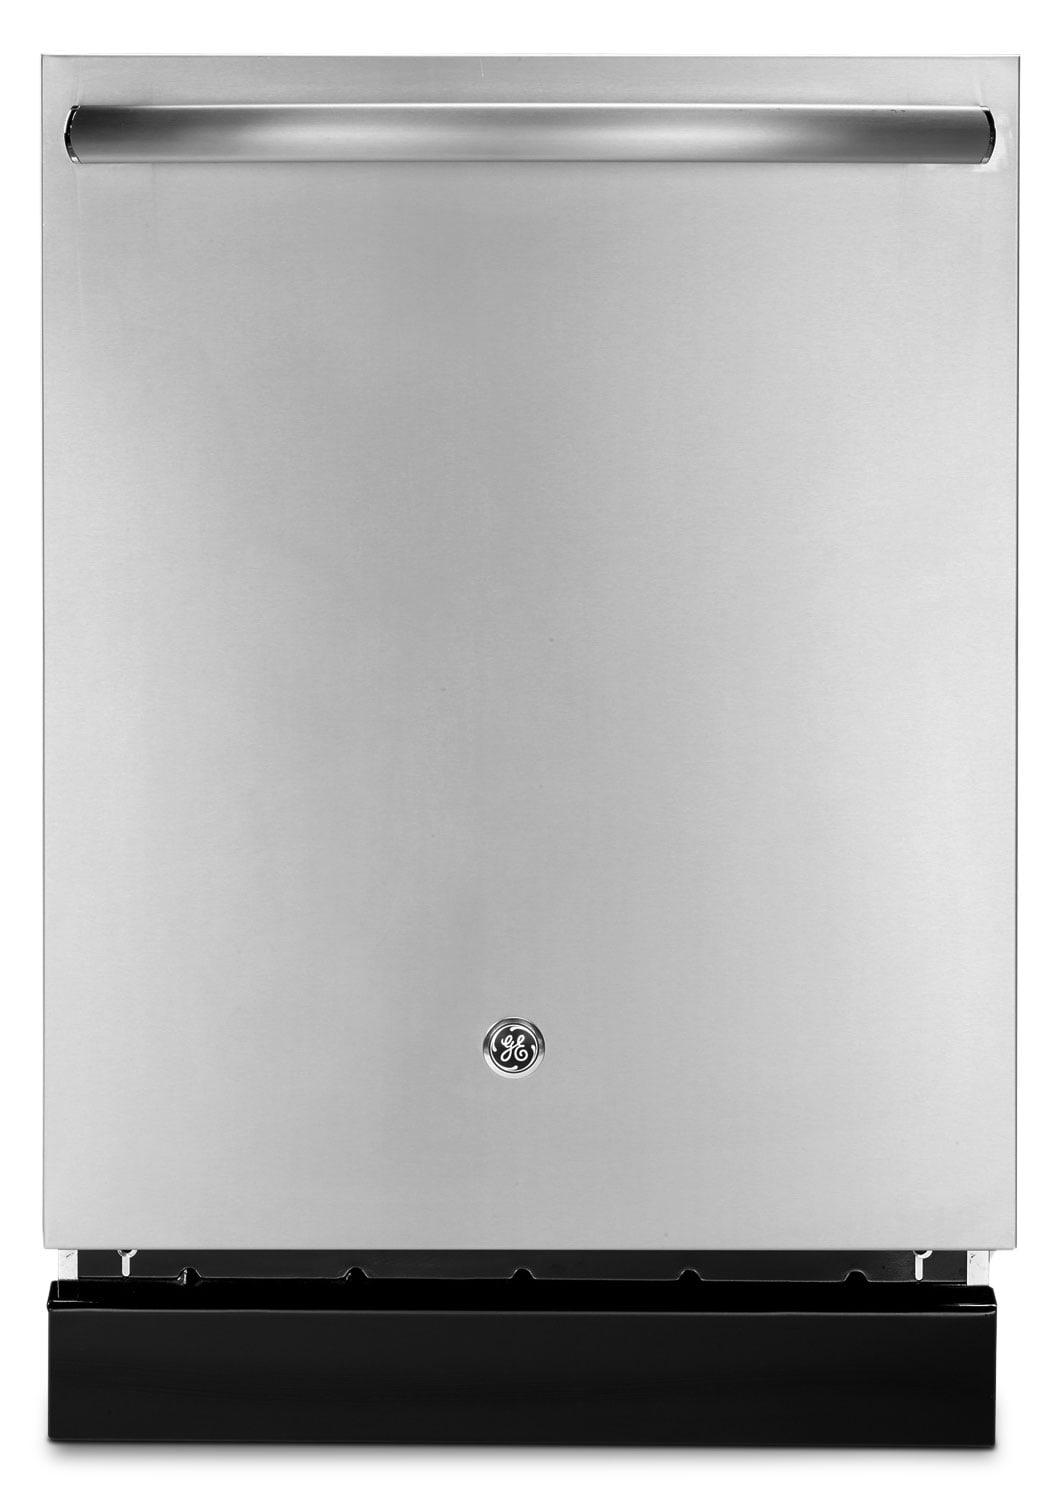 GE Built-In Dishwasher – Stainless Steel